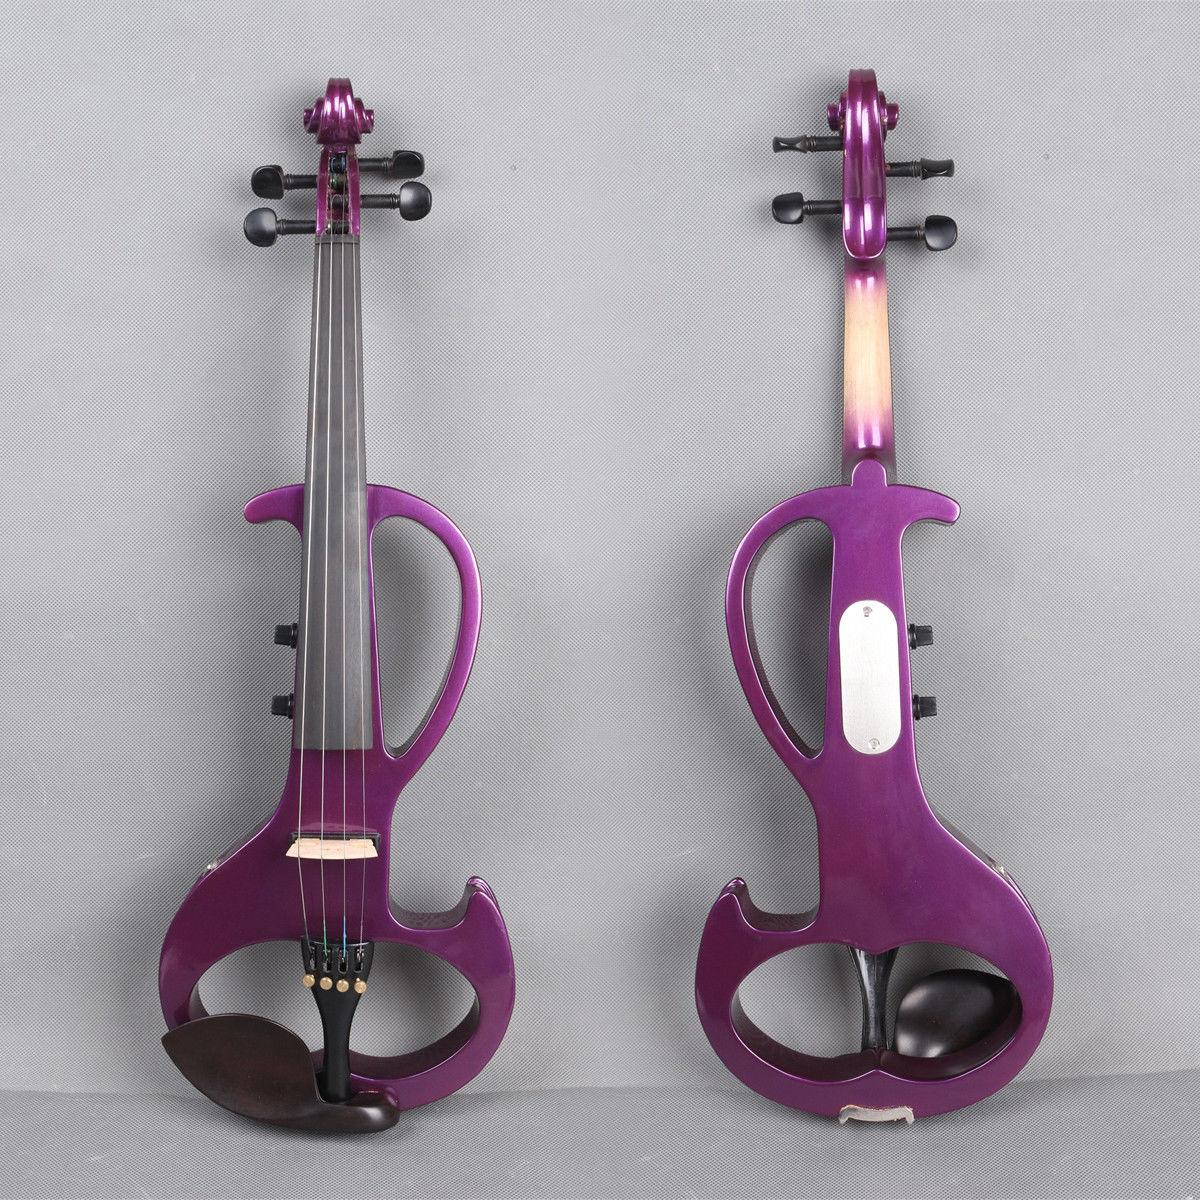 New 4/4 Electric Violin Powerful Sound Big Jack Purple Solid Wood Free Bow  Case